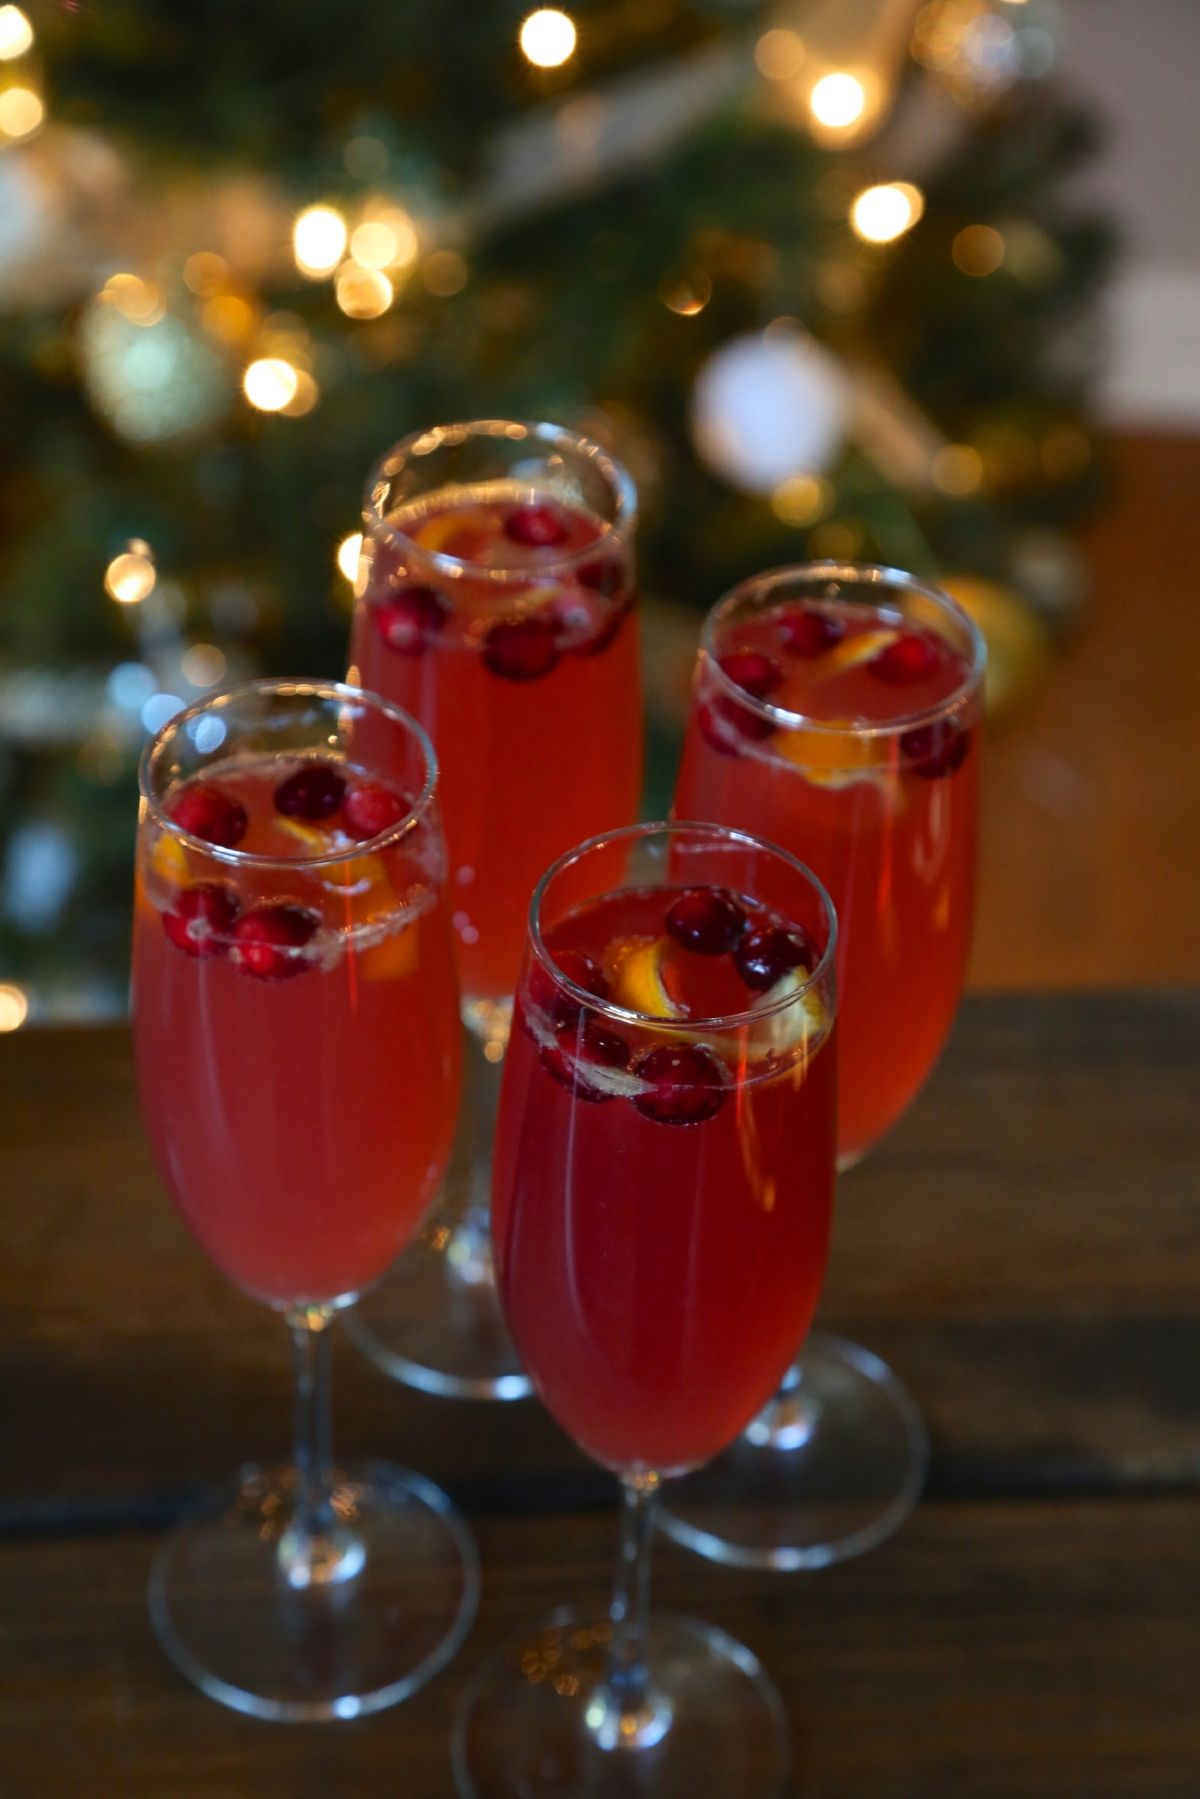 Poinsettia Cocktail With A Splash And A Twist Of Orange Weekend Craft Recipe Poinsettia Cocktail Fruity Cocktails Prosecco Cocktails